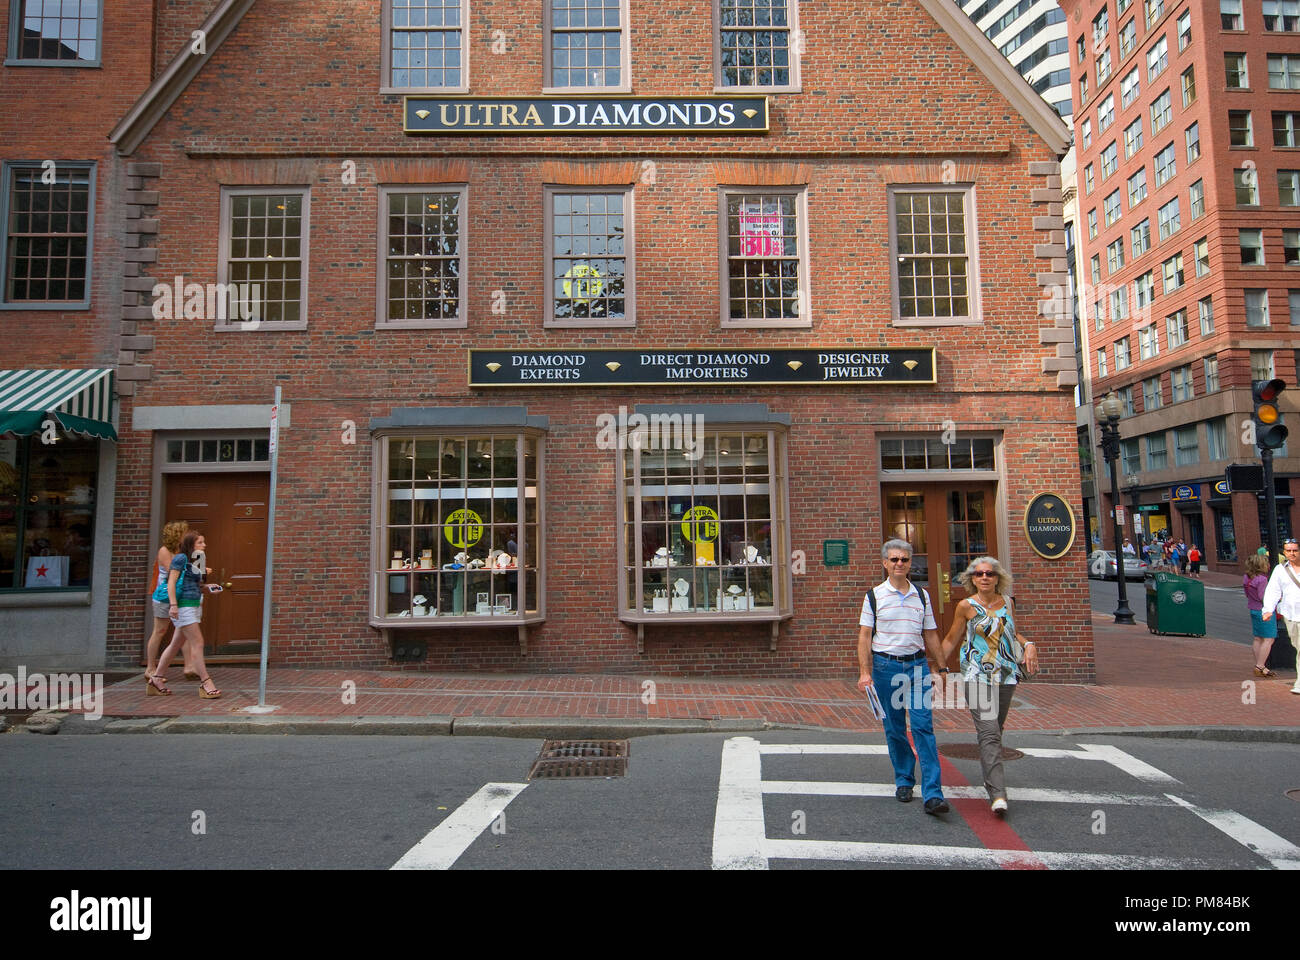 Ultra Diamonds Shop en Old Corner Bookstore, Suffolk County, Boston, Massachusetts, EE.UU. Imagen De Stock